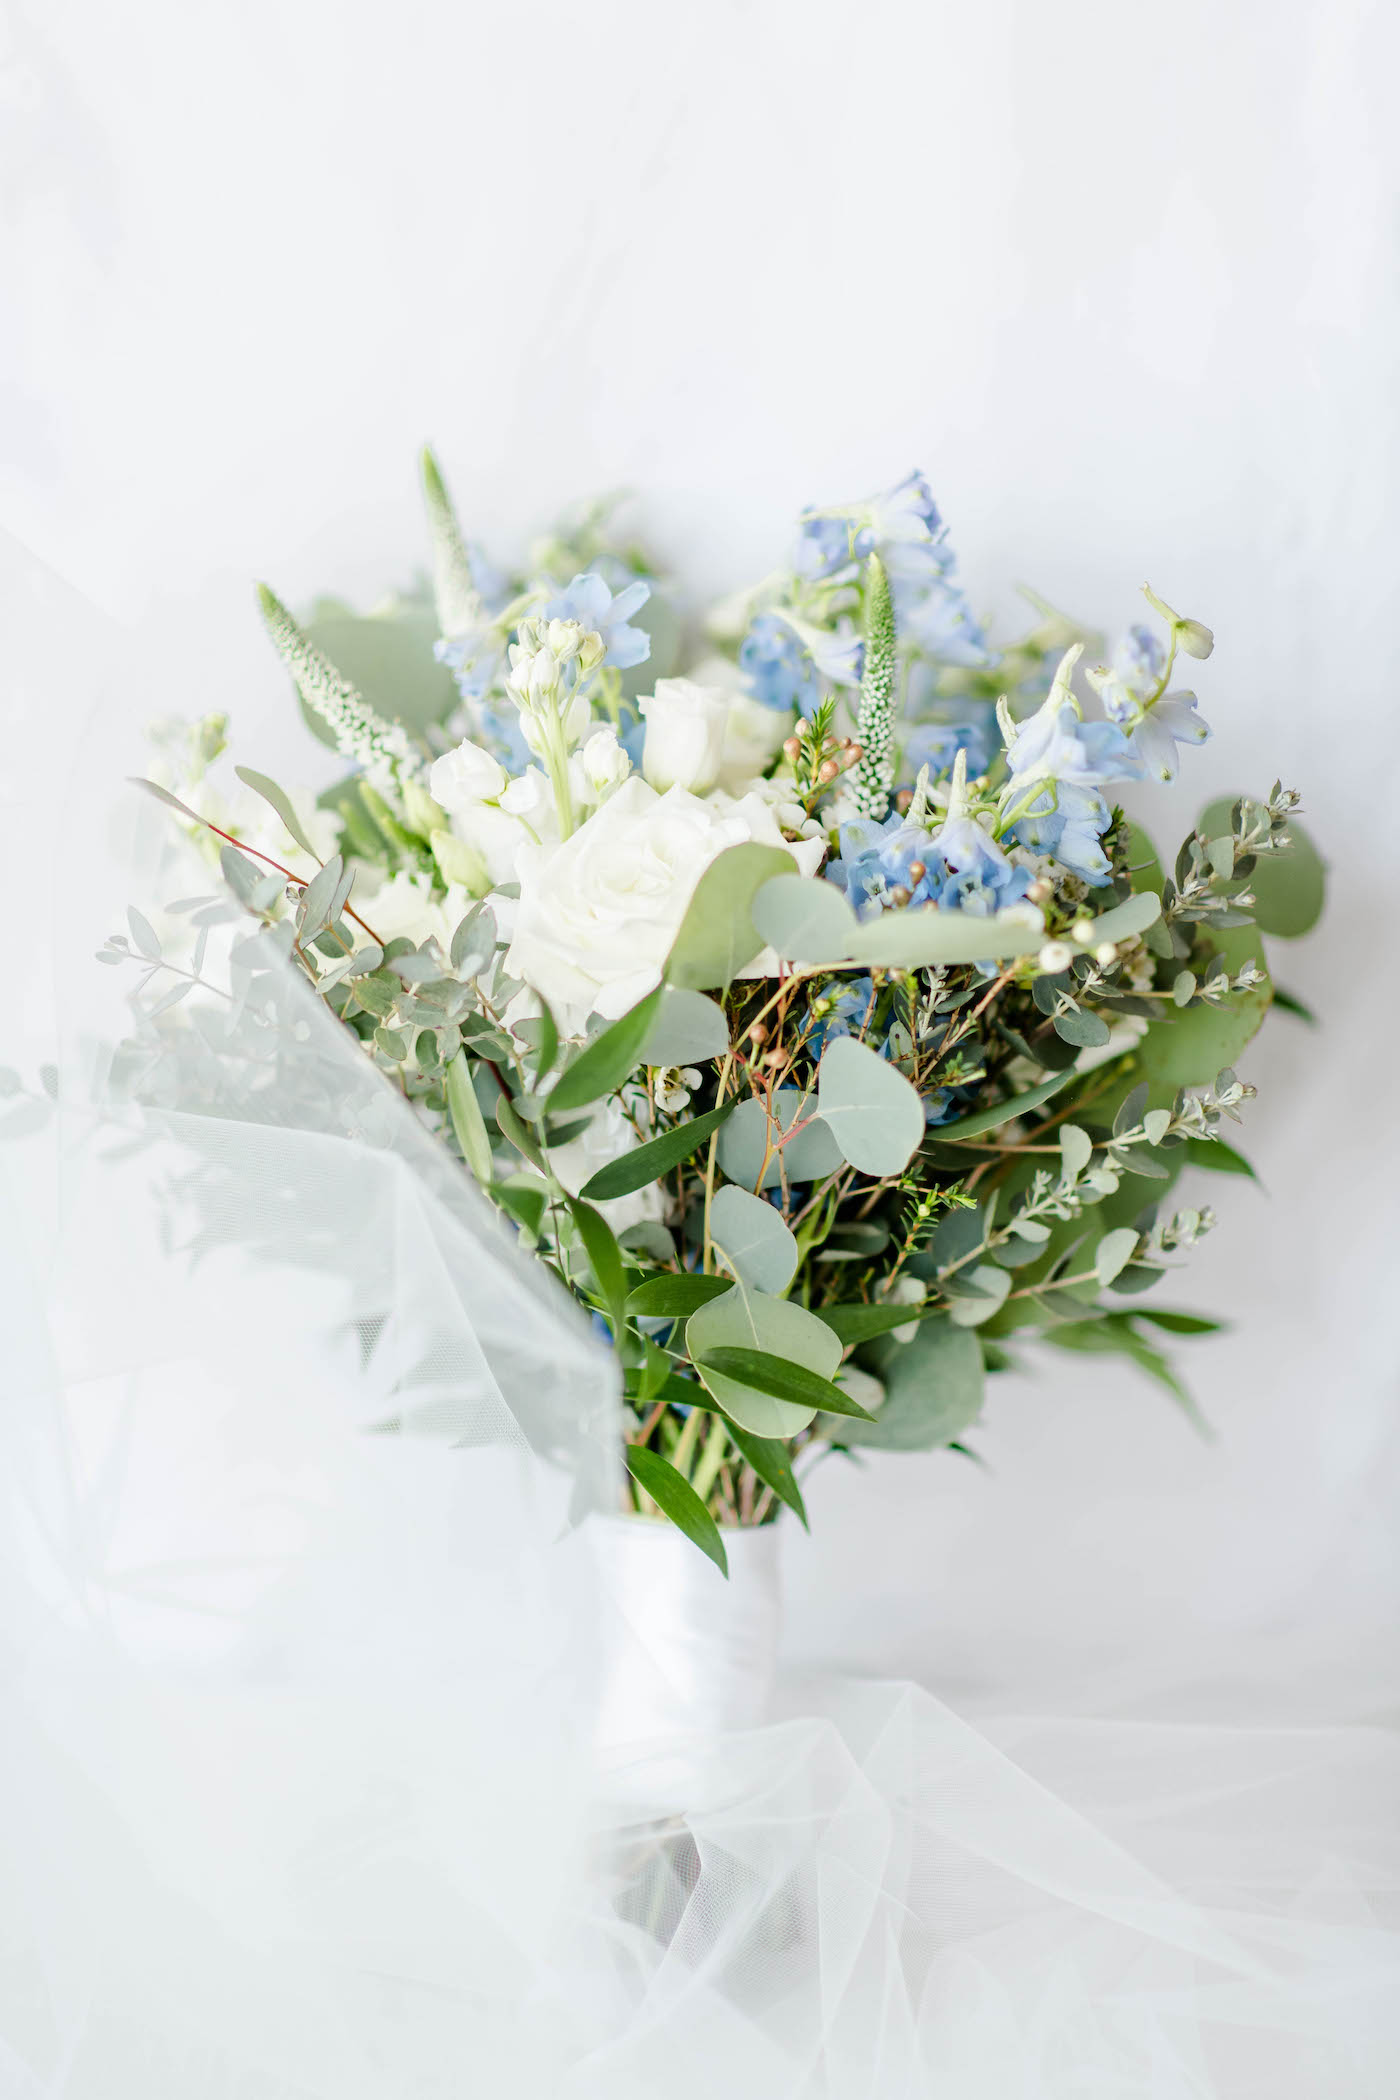 Wedding Bride Bouquet with Eucalyptus Greenery and White Roses and Blue Delphinium